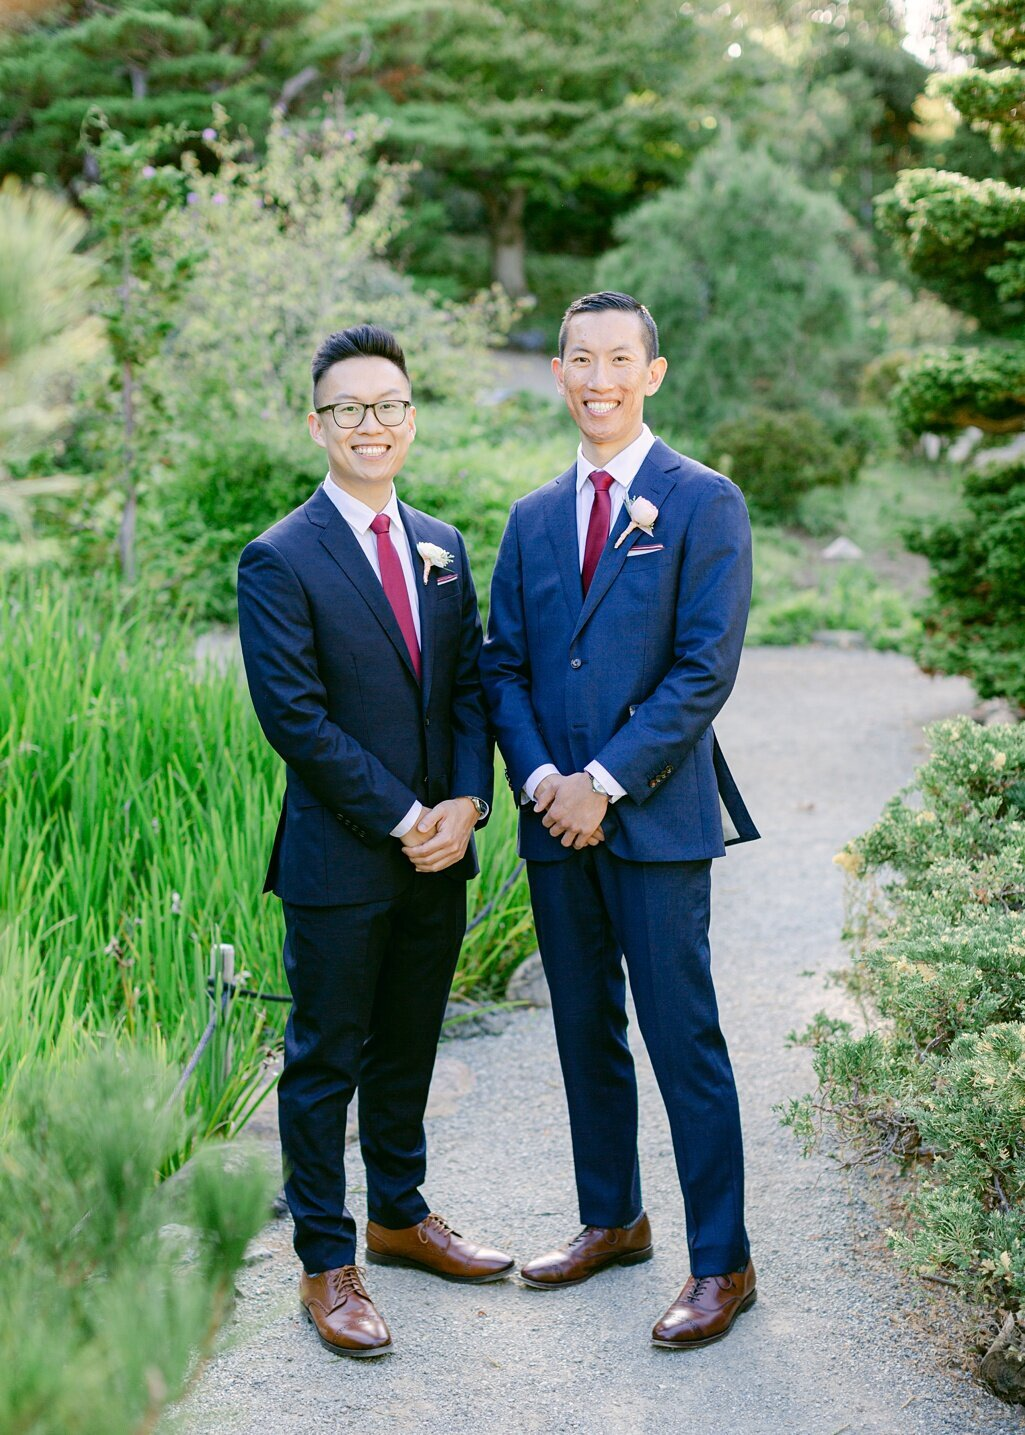 Jessie-Barksdale-Photography_Hakone-Gardens-Saratoga_San-Francisco-Bay-Area-Wedding-Photographer_0059